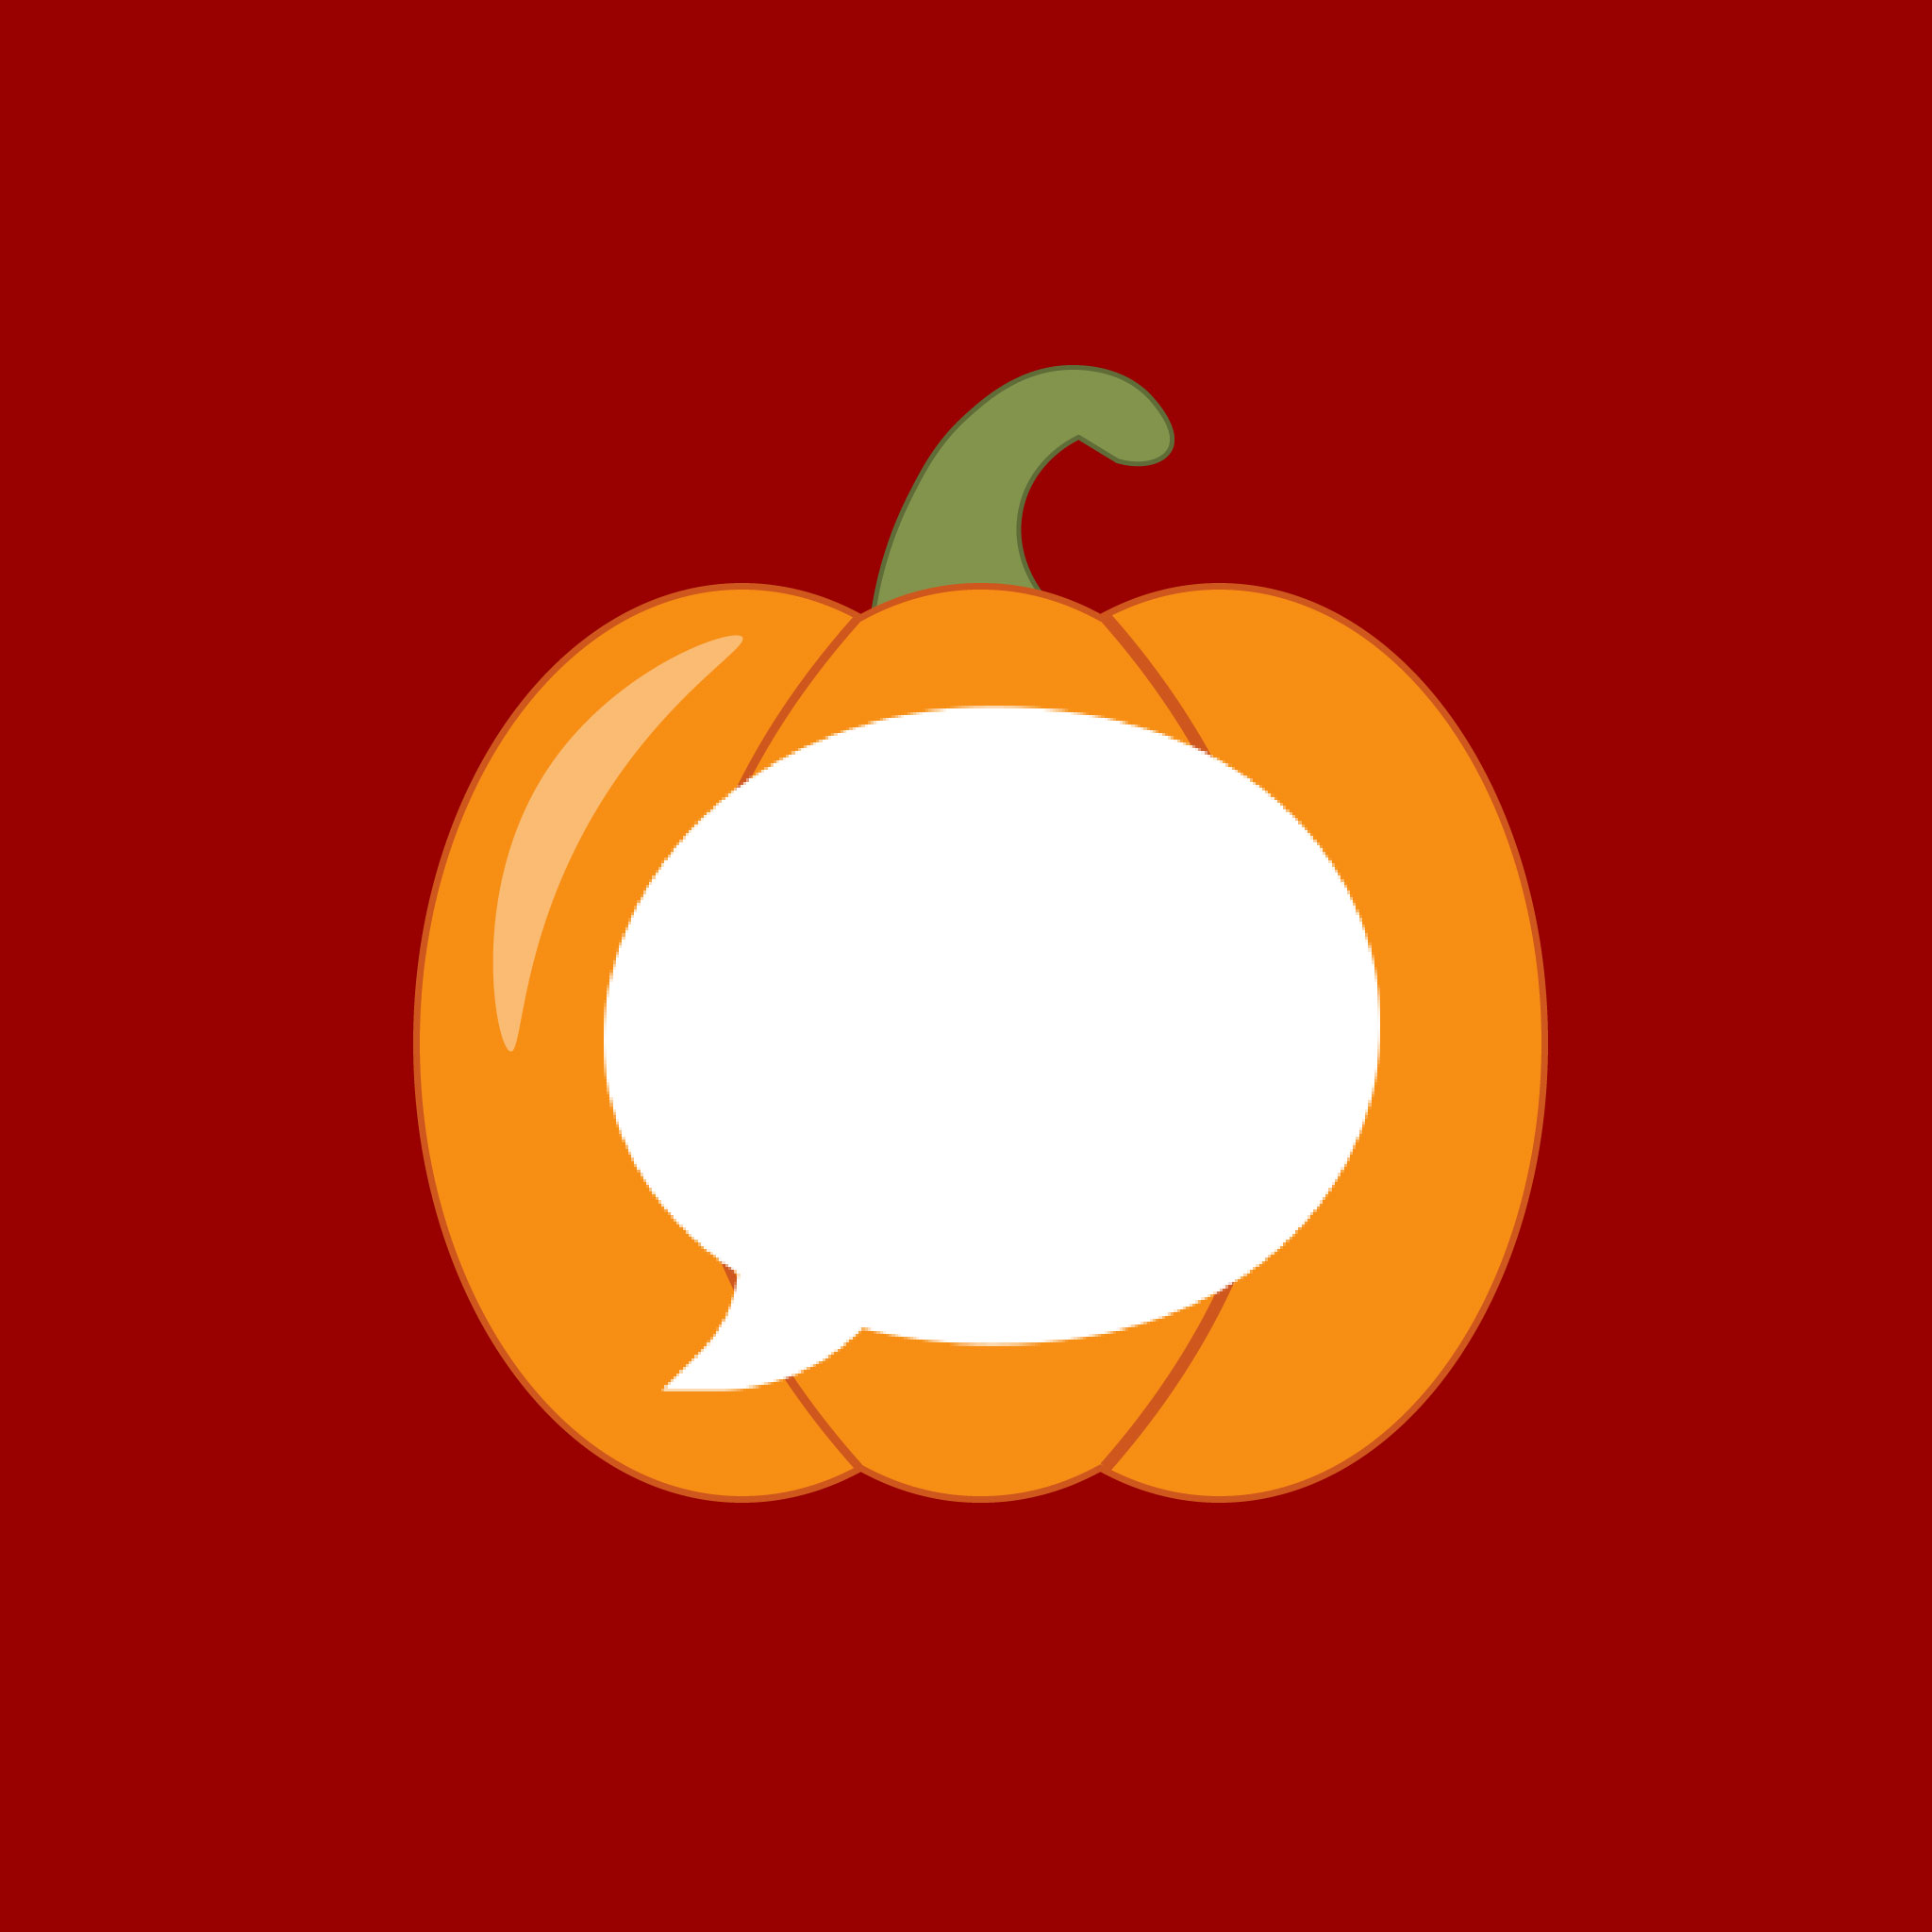 Messages Halloween App Icon from HalloweenCostumes.com